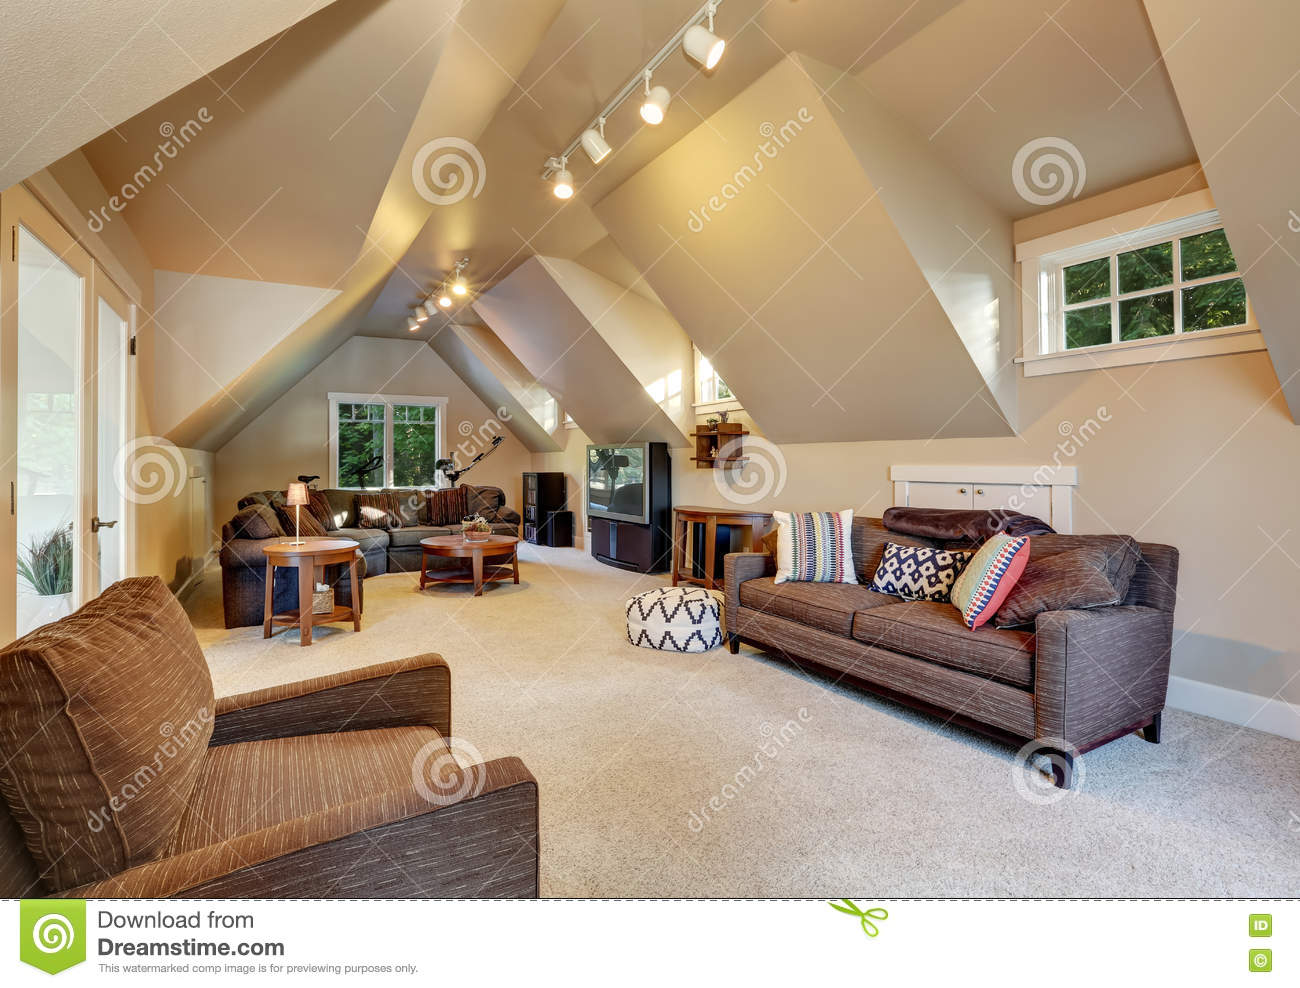 Upstairs Living Room Interior Of Luxury House. Stock Photo - Image Of Estate, Architecture: 80658228